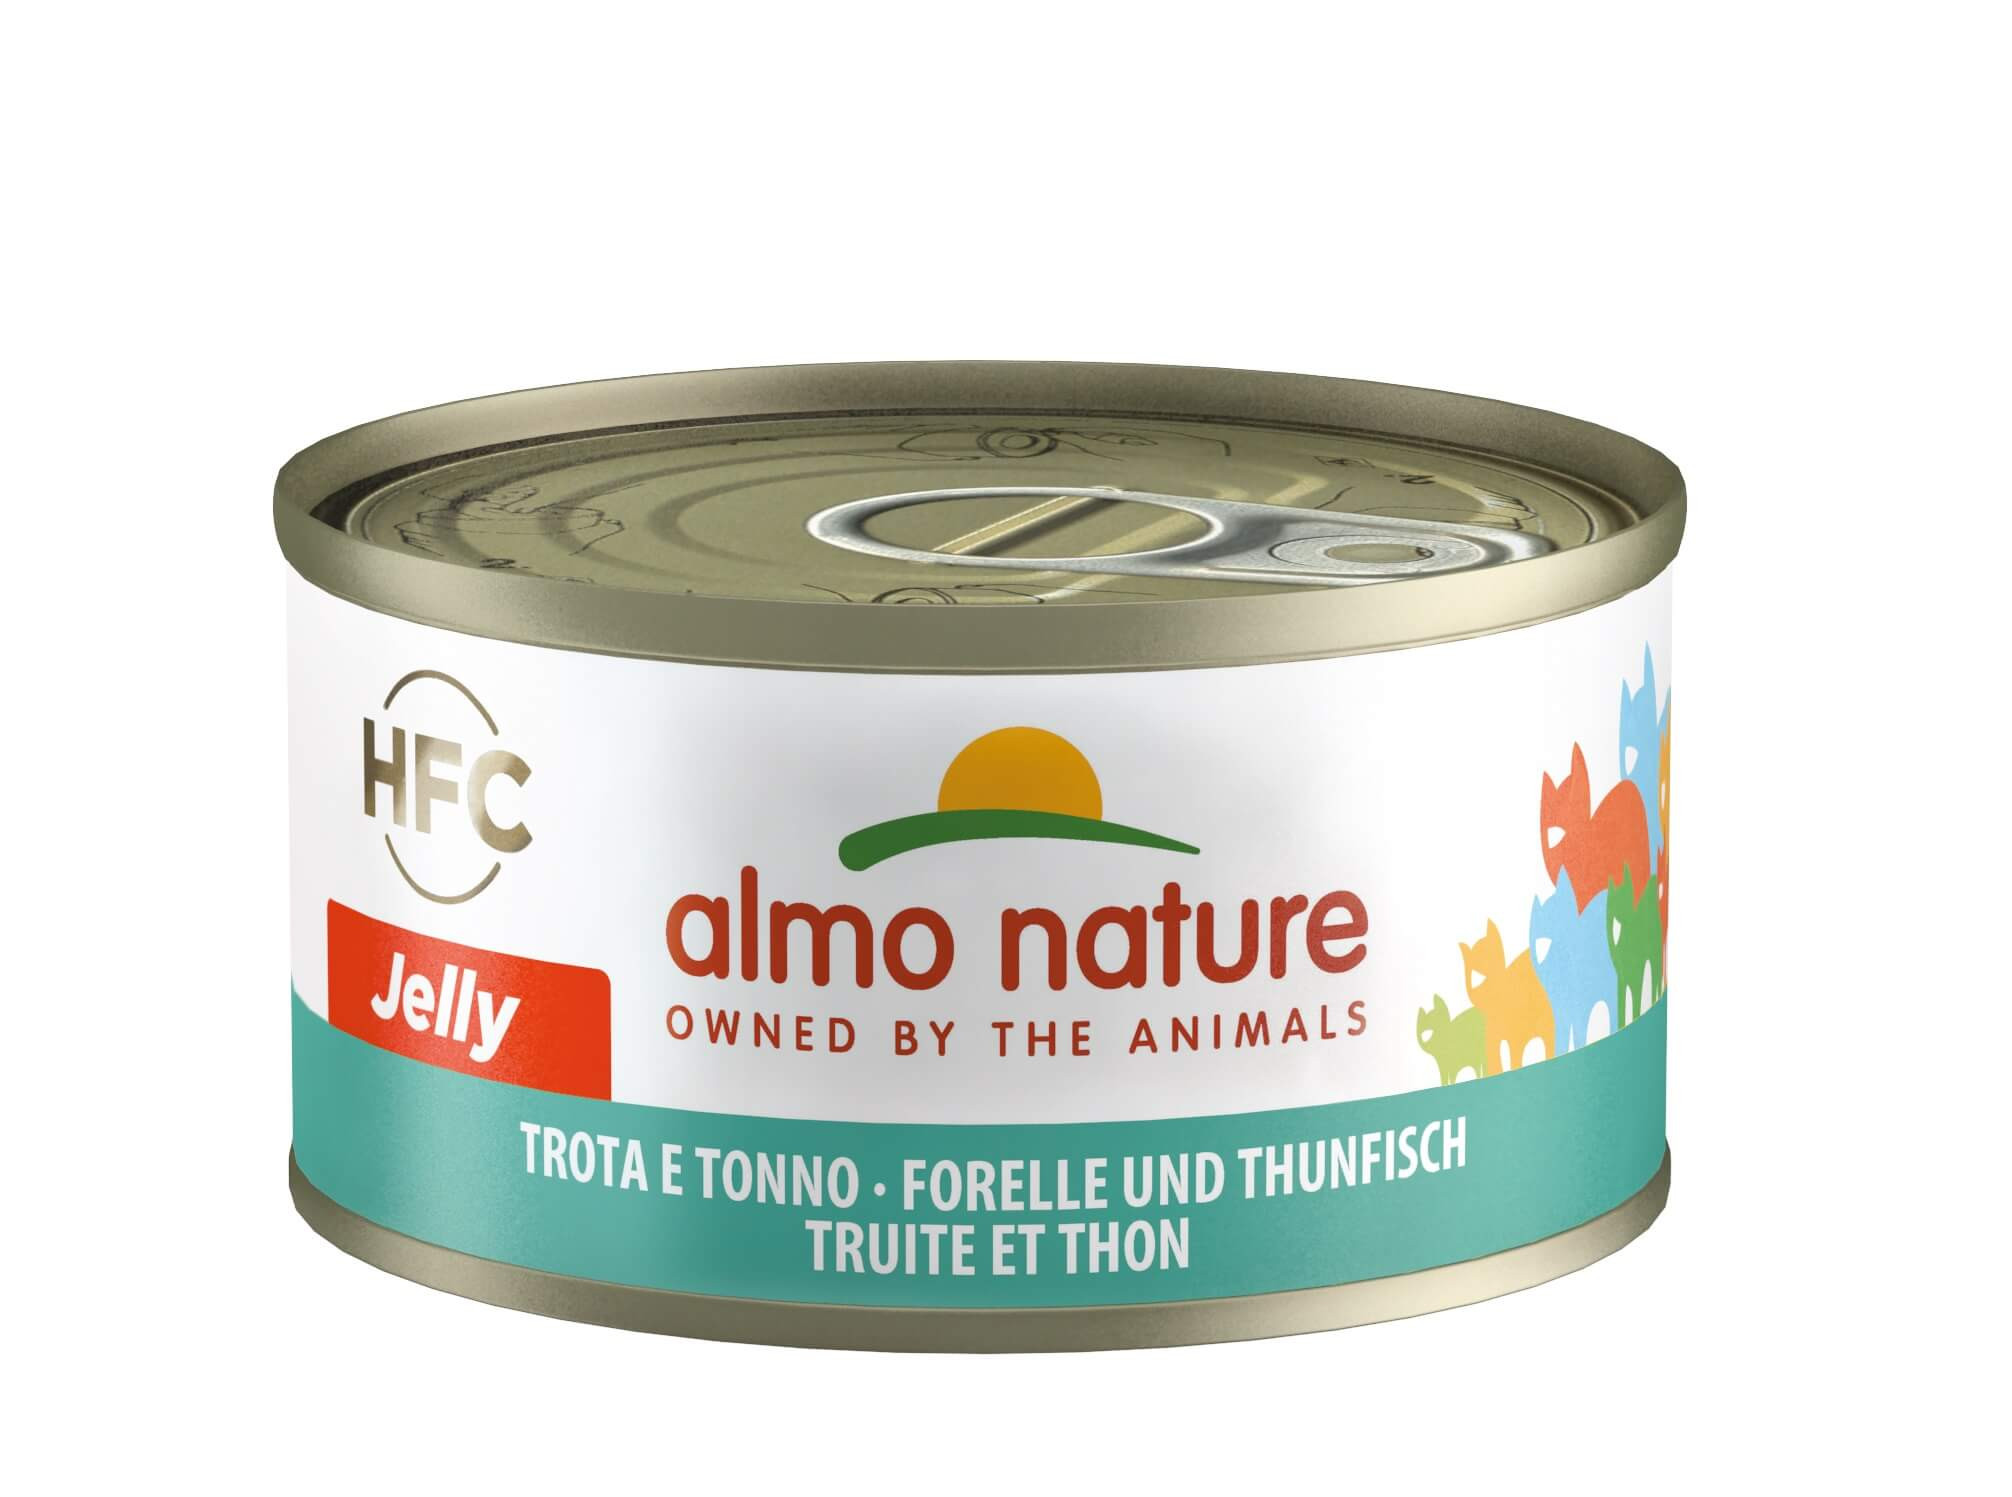 Almo Nature HFC Jelly Forelle in Thunfisch